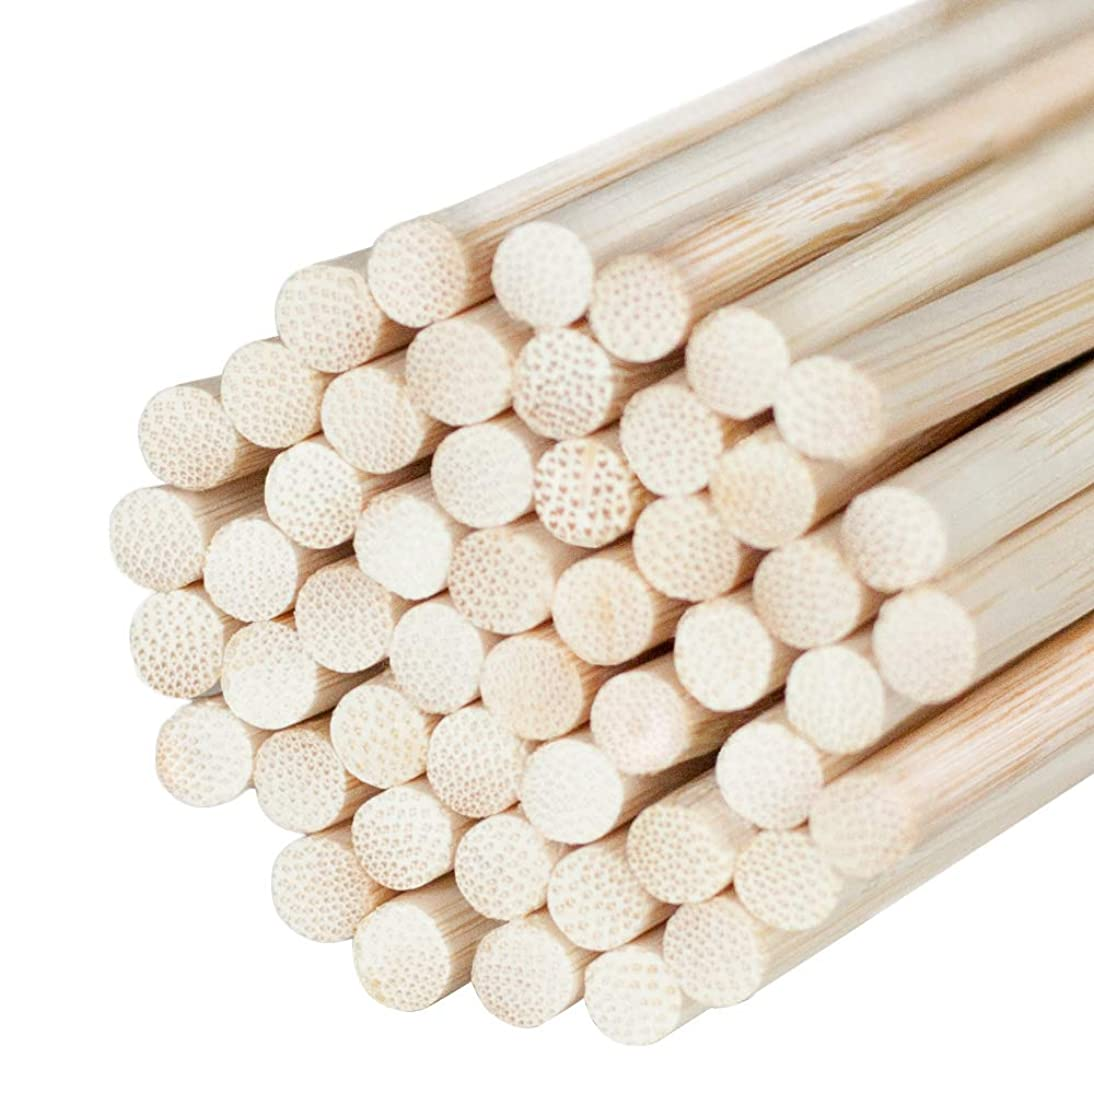 Natural Bamboo Dowel Craft Sticks for Photo Booth Props – Bamboo Rods Sticks for Crafts & Photo Booth Props 12 x 1/4 Inch Wooden Dowels (50 Count)